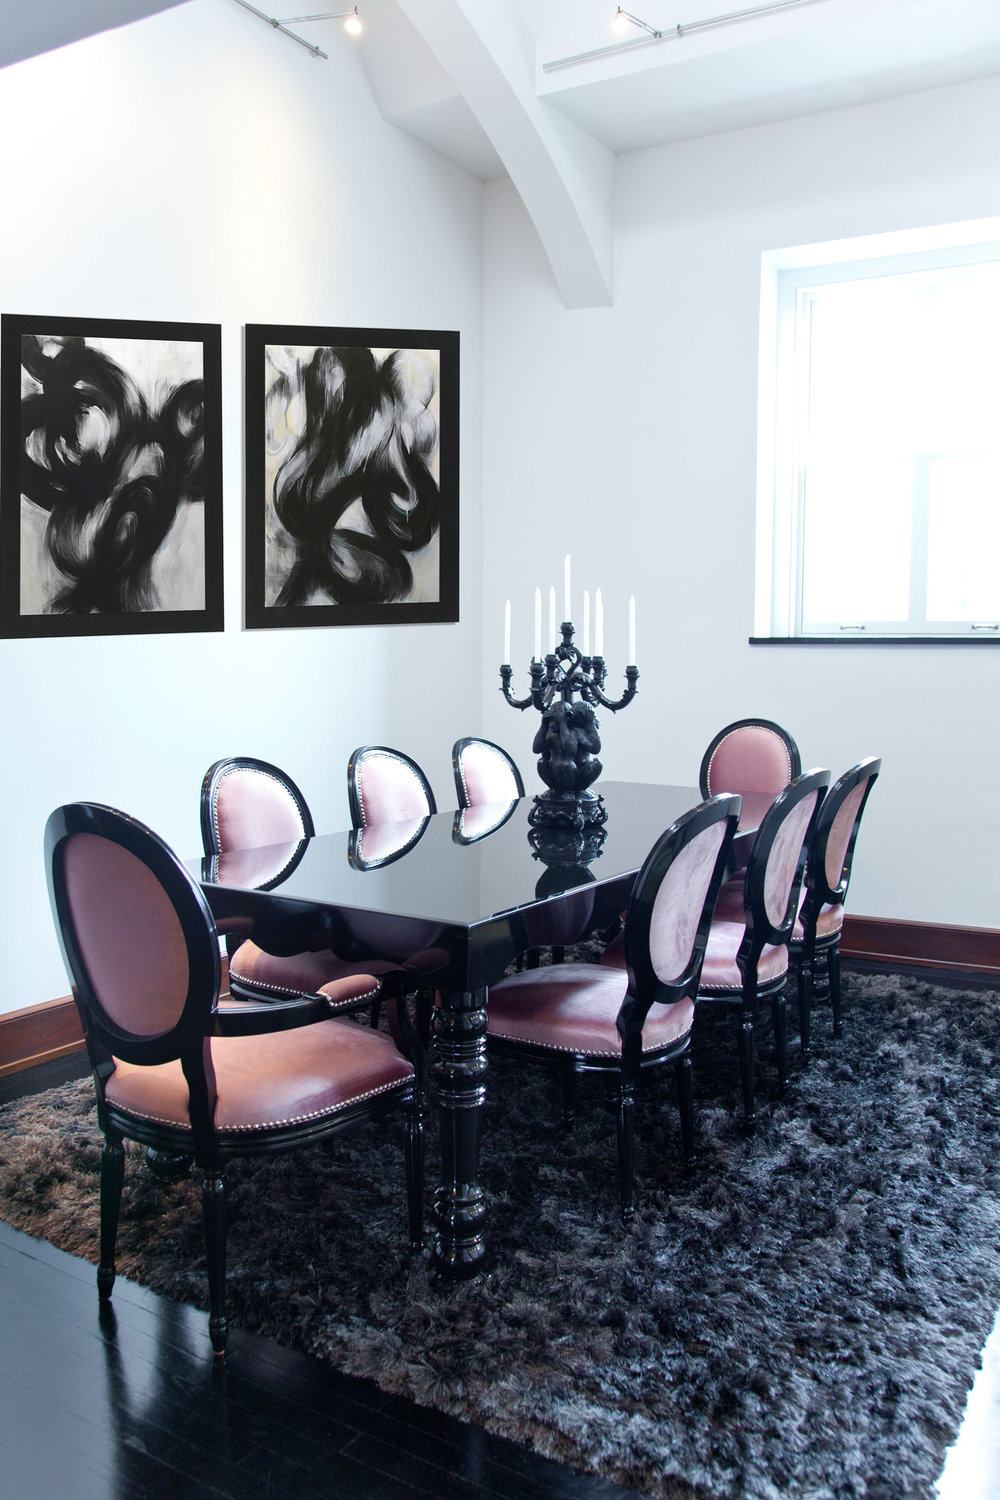 Soho_Dining_Room.jpg